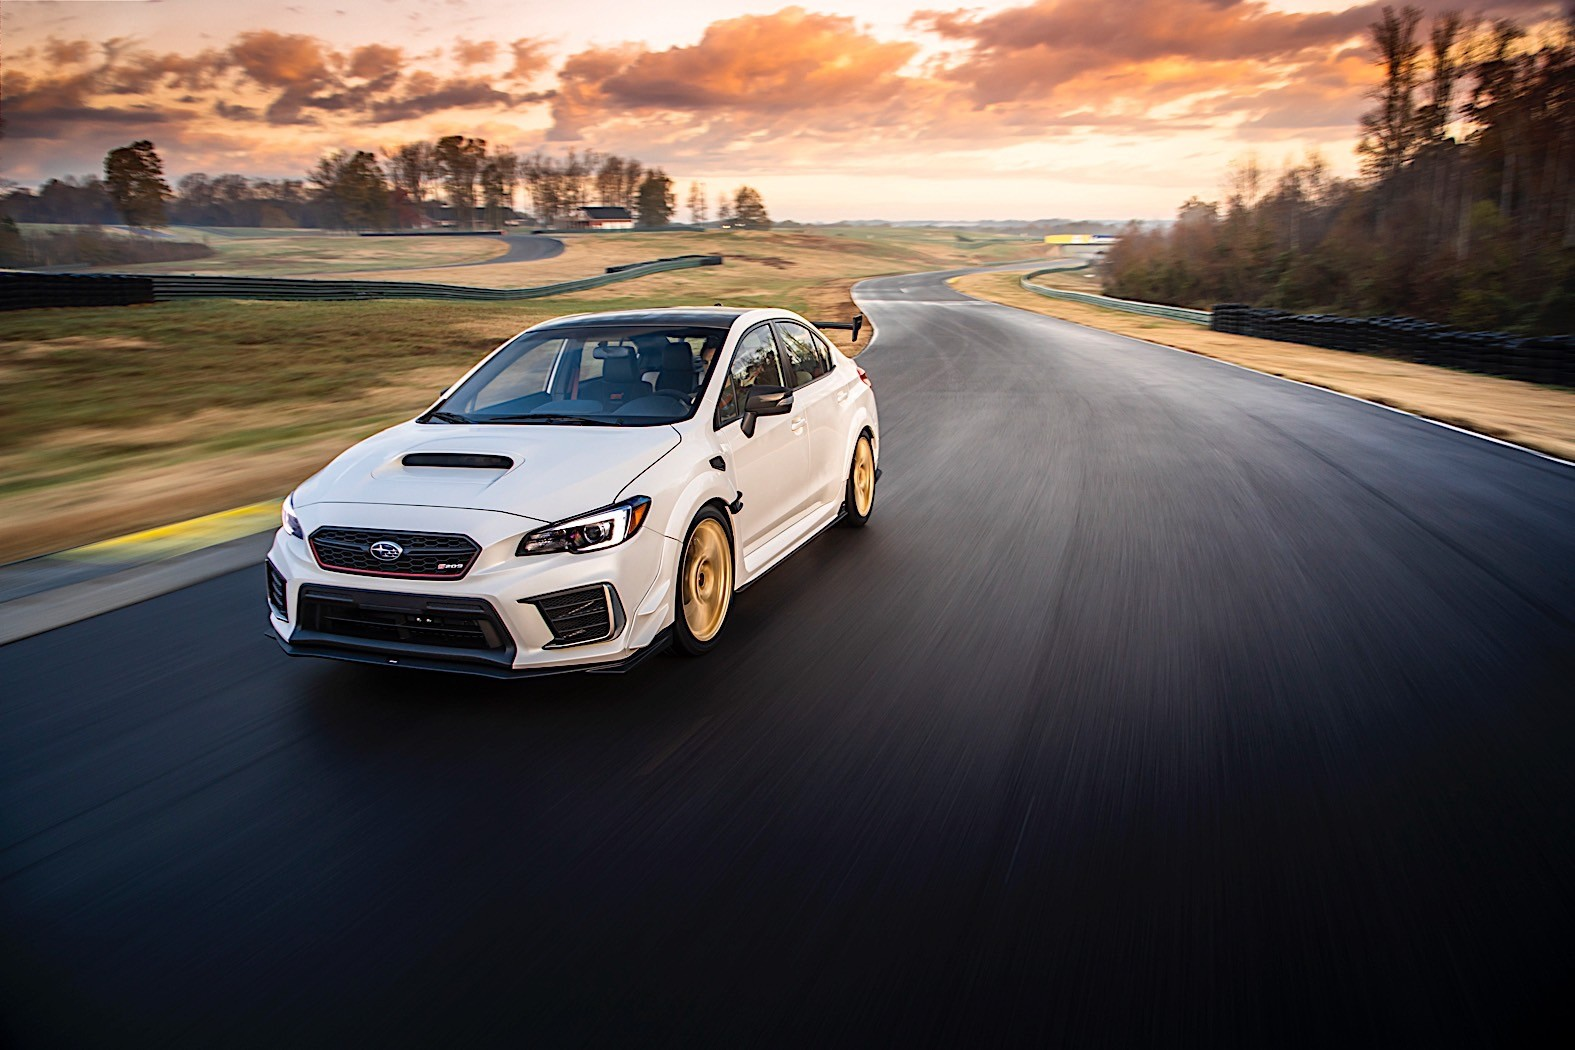 Subaru Shows STI S209 Front Grille Ahead of NAIAS Debut